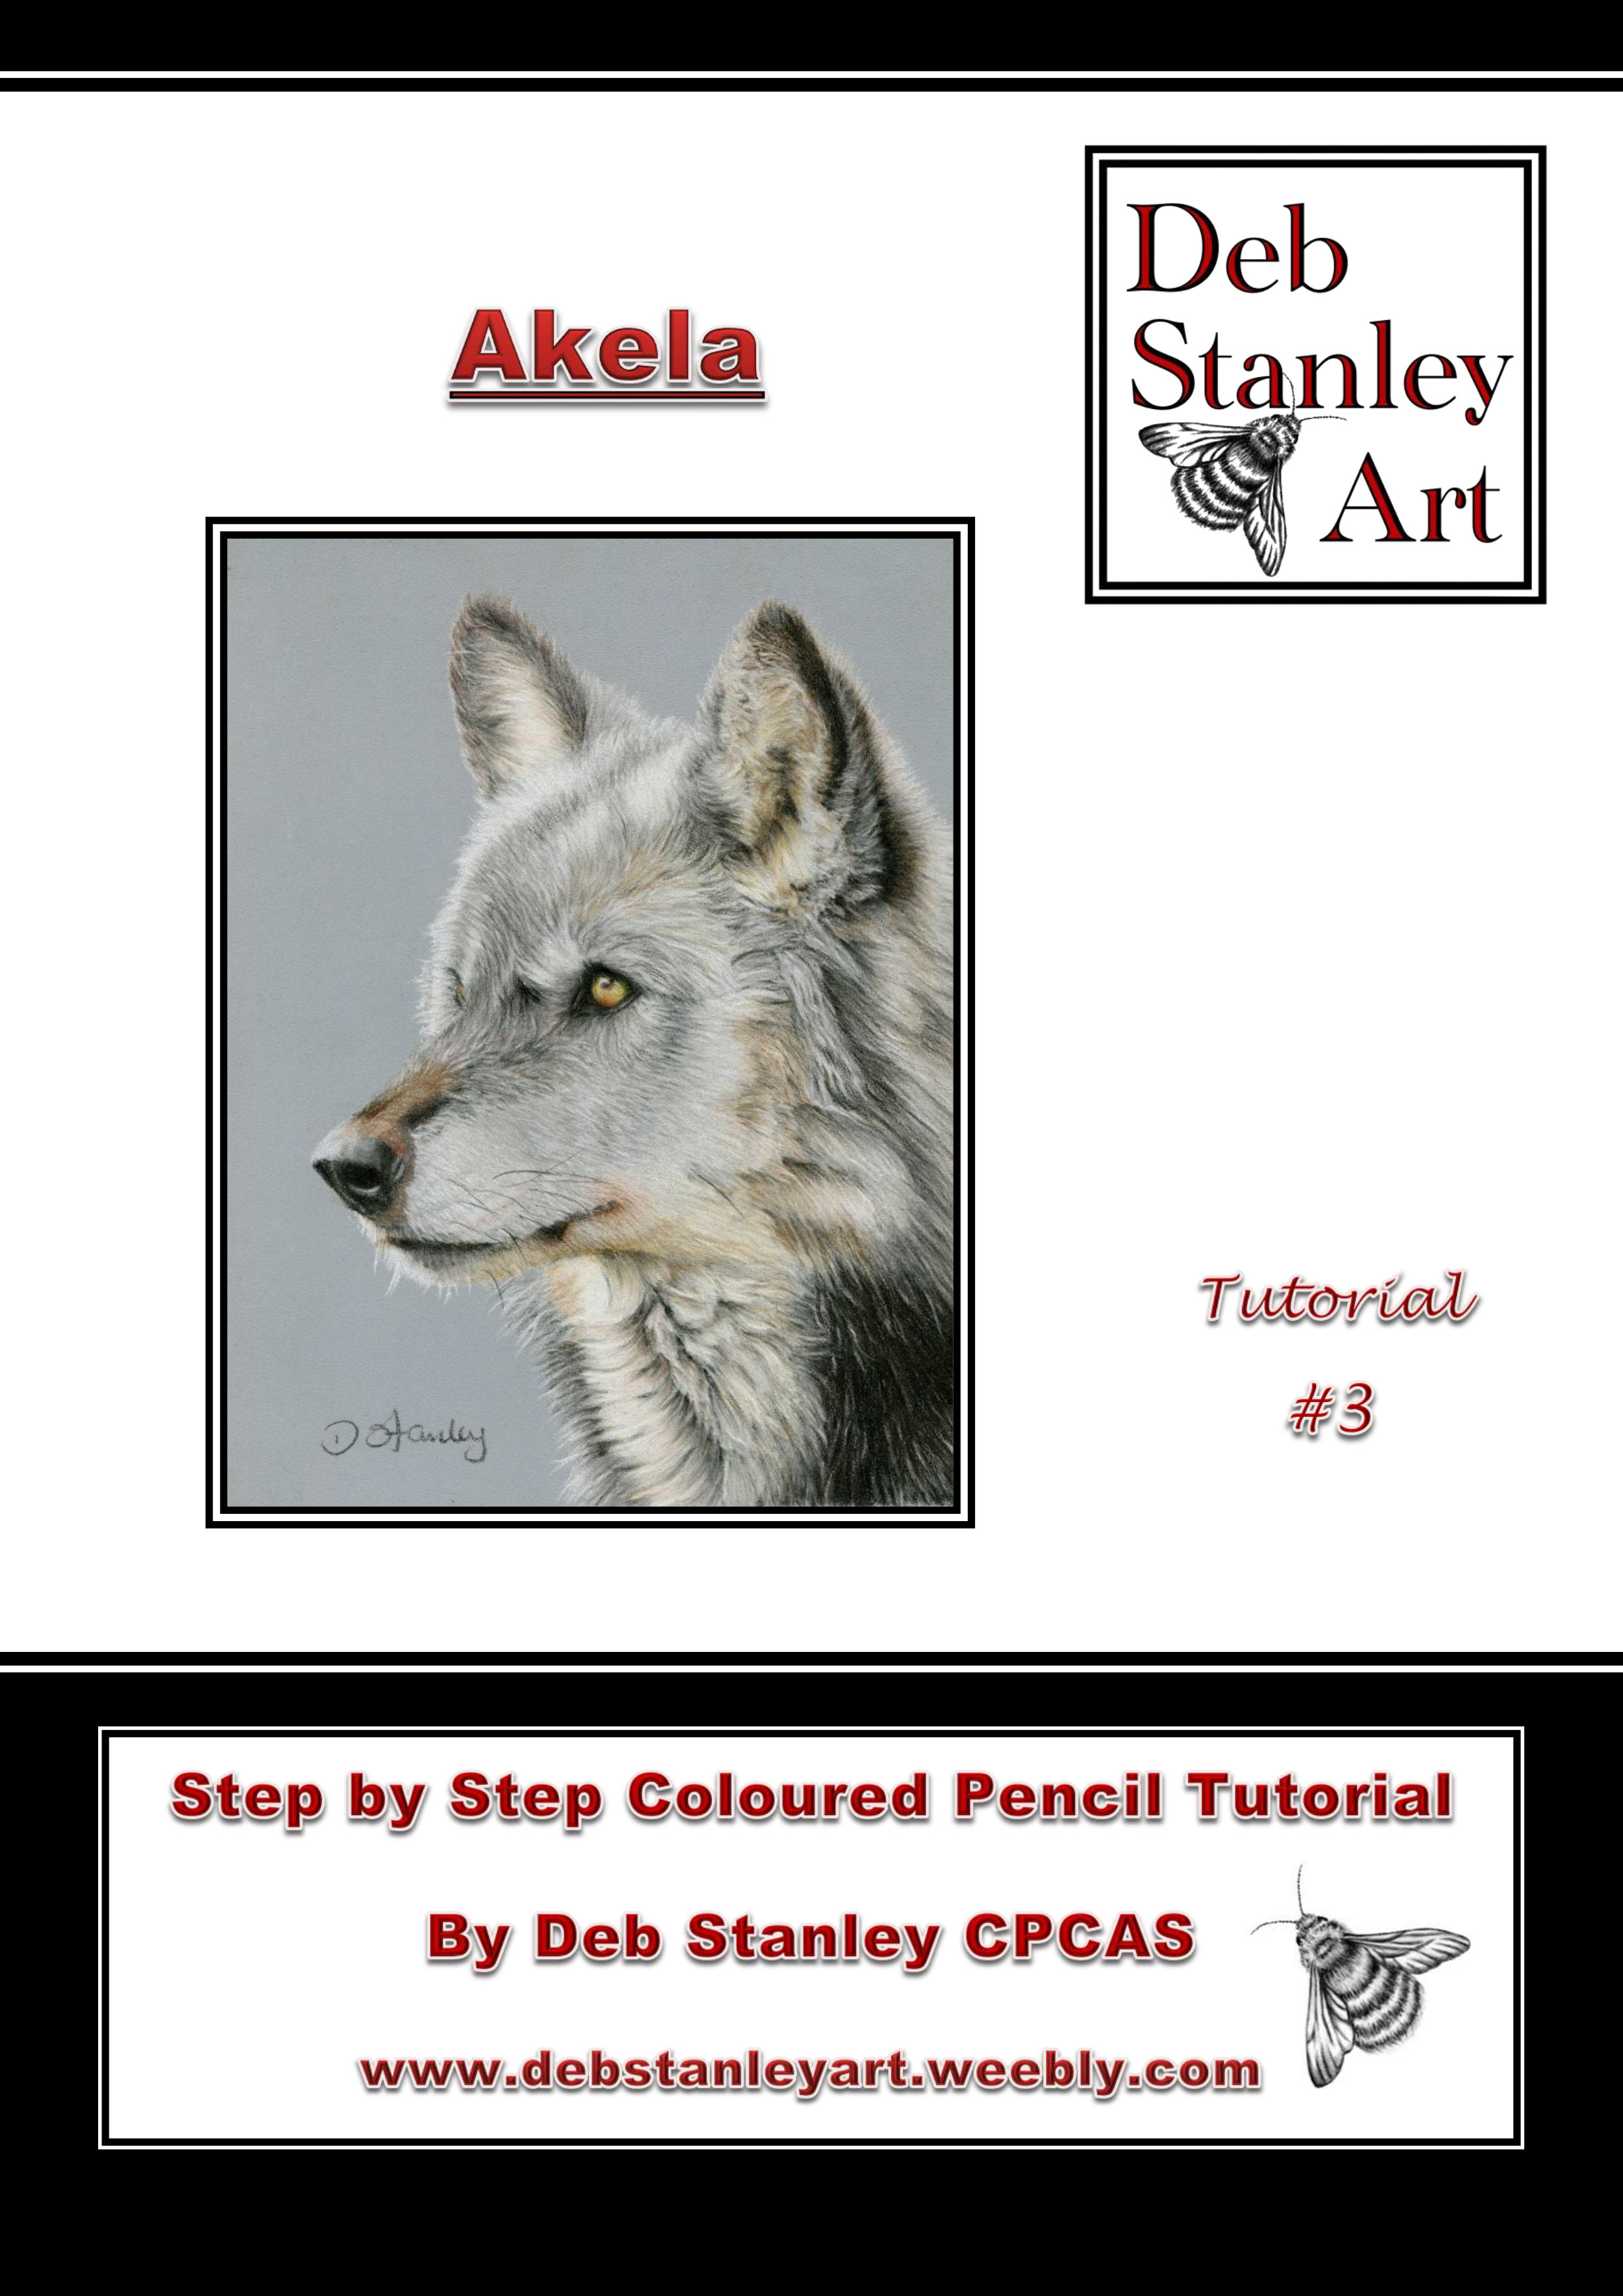 Akela Tutorial #3